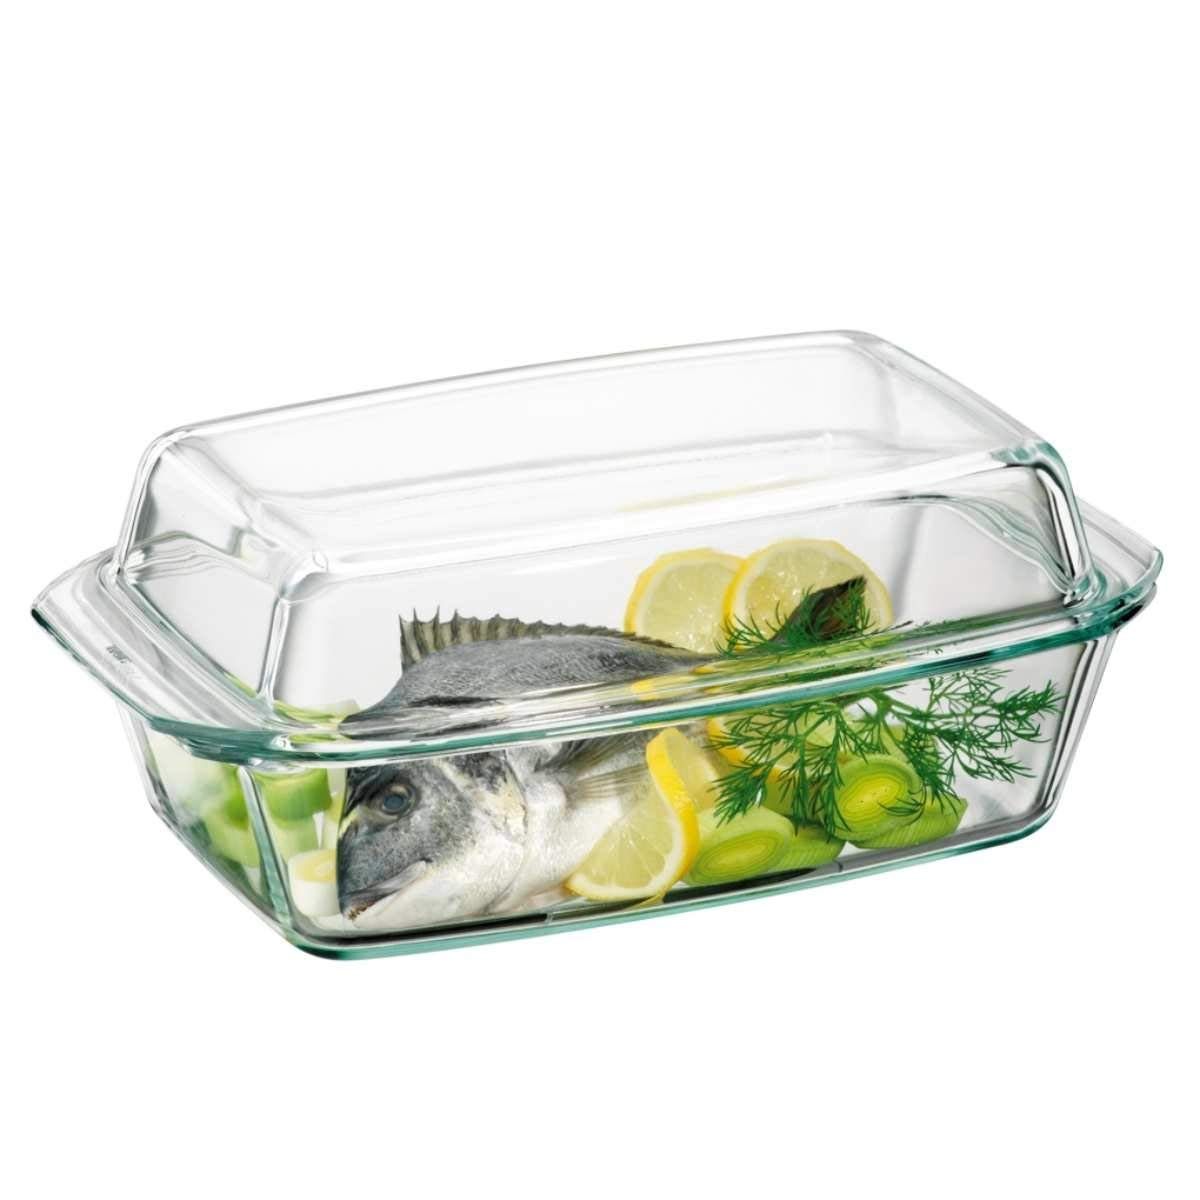 Clear Oblong Glass Casserole by Simax | With High Lid, Heat, Cold and Shock Proof, Made in Europe, 3 Quart